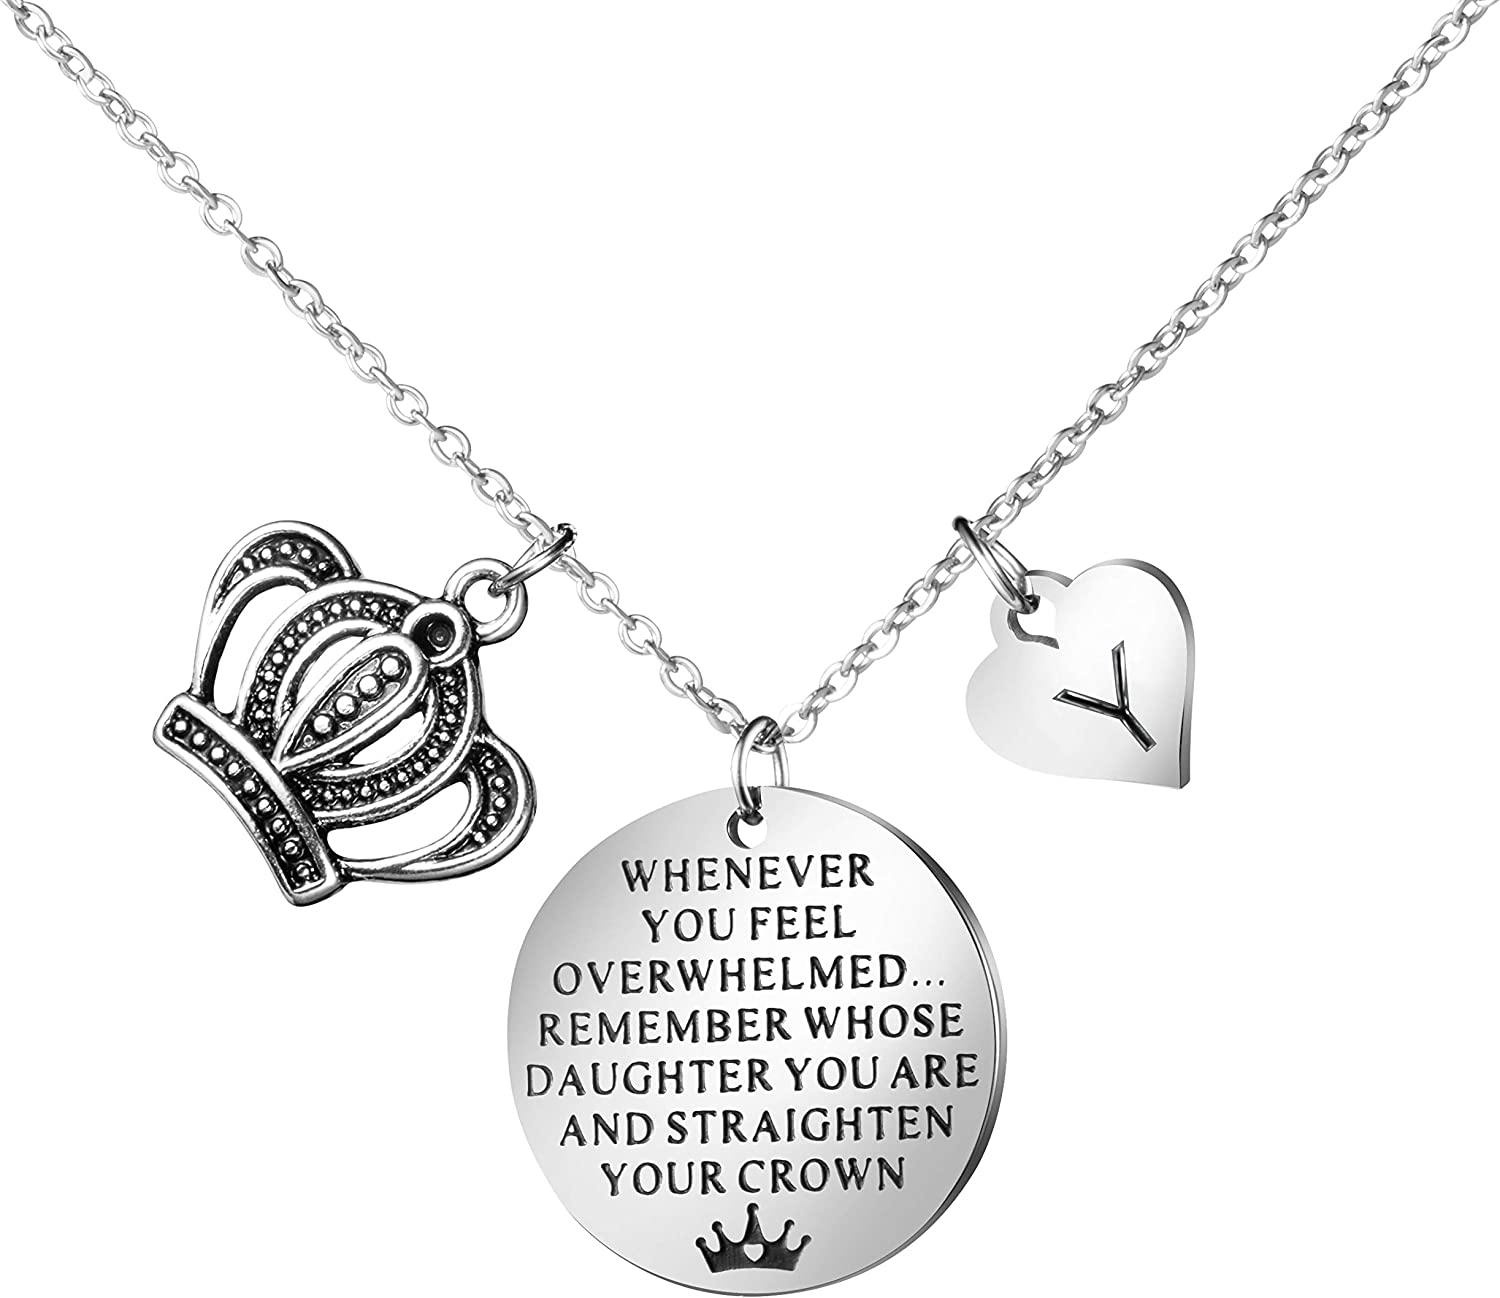 Joycuff Inspirational Gifts to My Daughter from Mom Dad Whenever You Feel Overwhelmed Remember Whose Straighten Your Crown Personalized Initial Letter Necklaces for Her